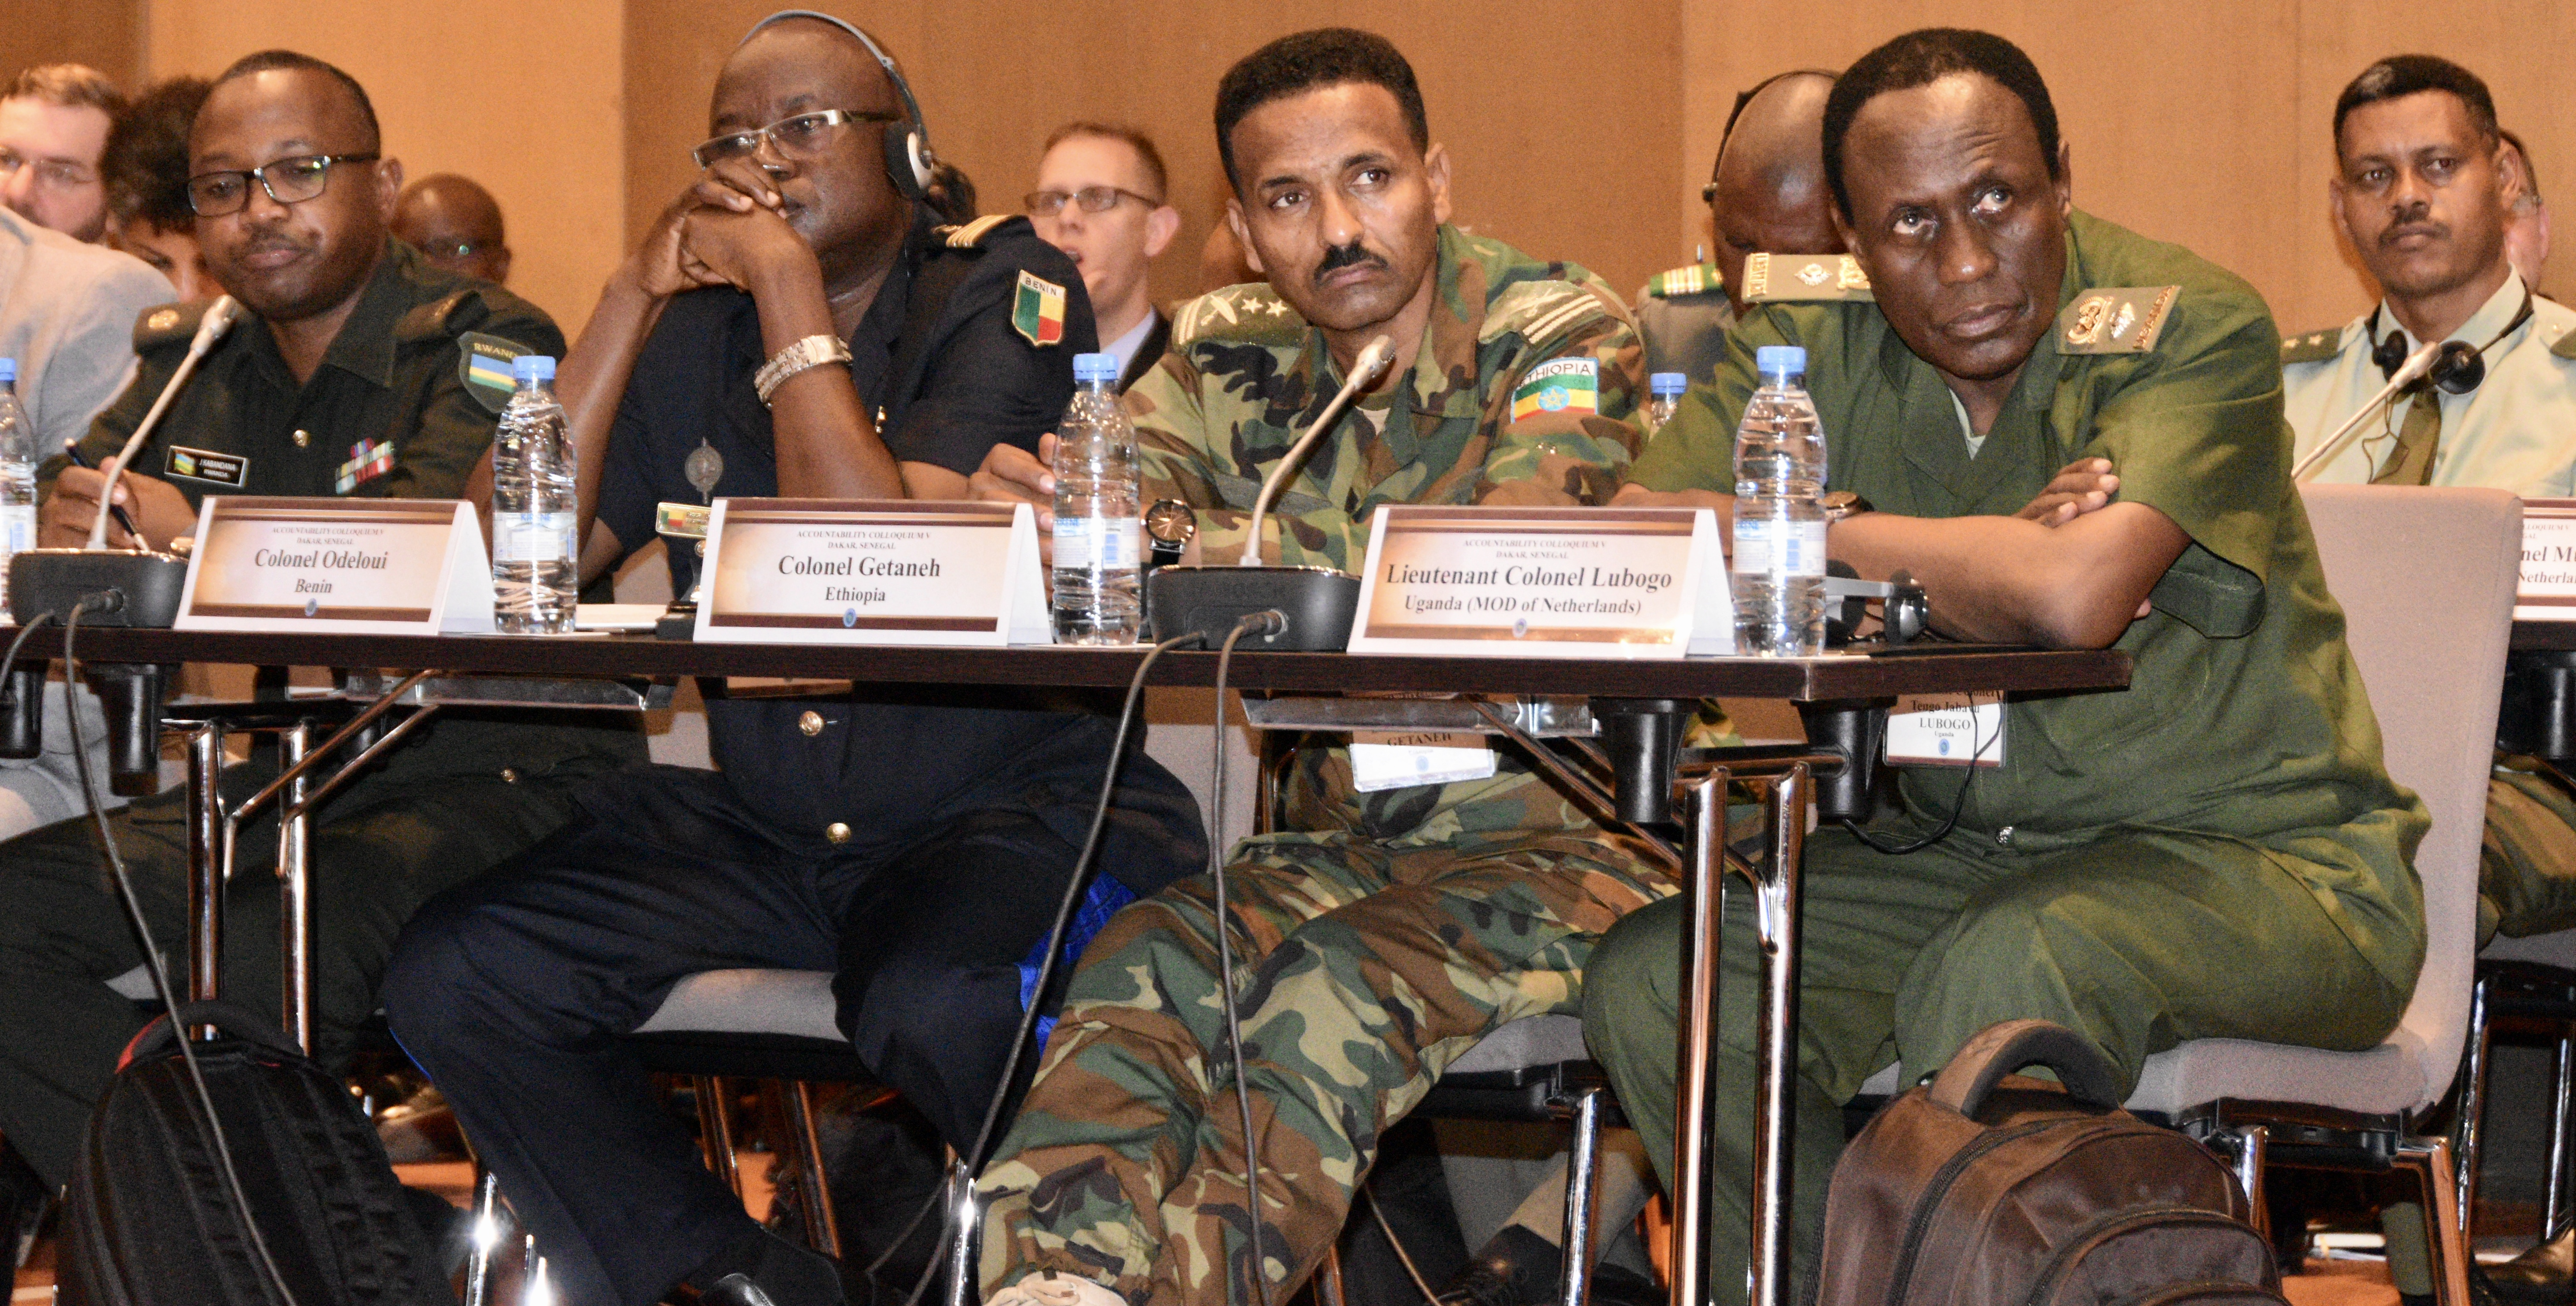 U.S. AFRICOM conducts the Fifth Accountability Colloquium, the first to be conducted in Africa.  Nearly 50 military and civilian legal professionals and troop commanders from 24 African countries participated in the event in Senegal, Aug. 22-24, 2017, which was coordinated by U.S. AFRICOM in cooperation with the International Institute of Humanitarian Law. Senegal volunteered to host this year's colloquium and participants were welcomed by Contre-amiral Momar Diagne, head of the Senegalese Navy. This was the fifth such event sponsored by U.S. AFRICOM's Office of Legal Counsel, Legal Engagements Division. This year, AC V continued the effort to address the challenge of establishing the rule of law by expanding the discussion from AC IV to include identifying responsibilities and best practices of commanders and legal advisors in preventing and responding to SEA in peace operations. (Photo by Brenda Law, U.S. AFRICOM Public Affairs/RELEASED)